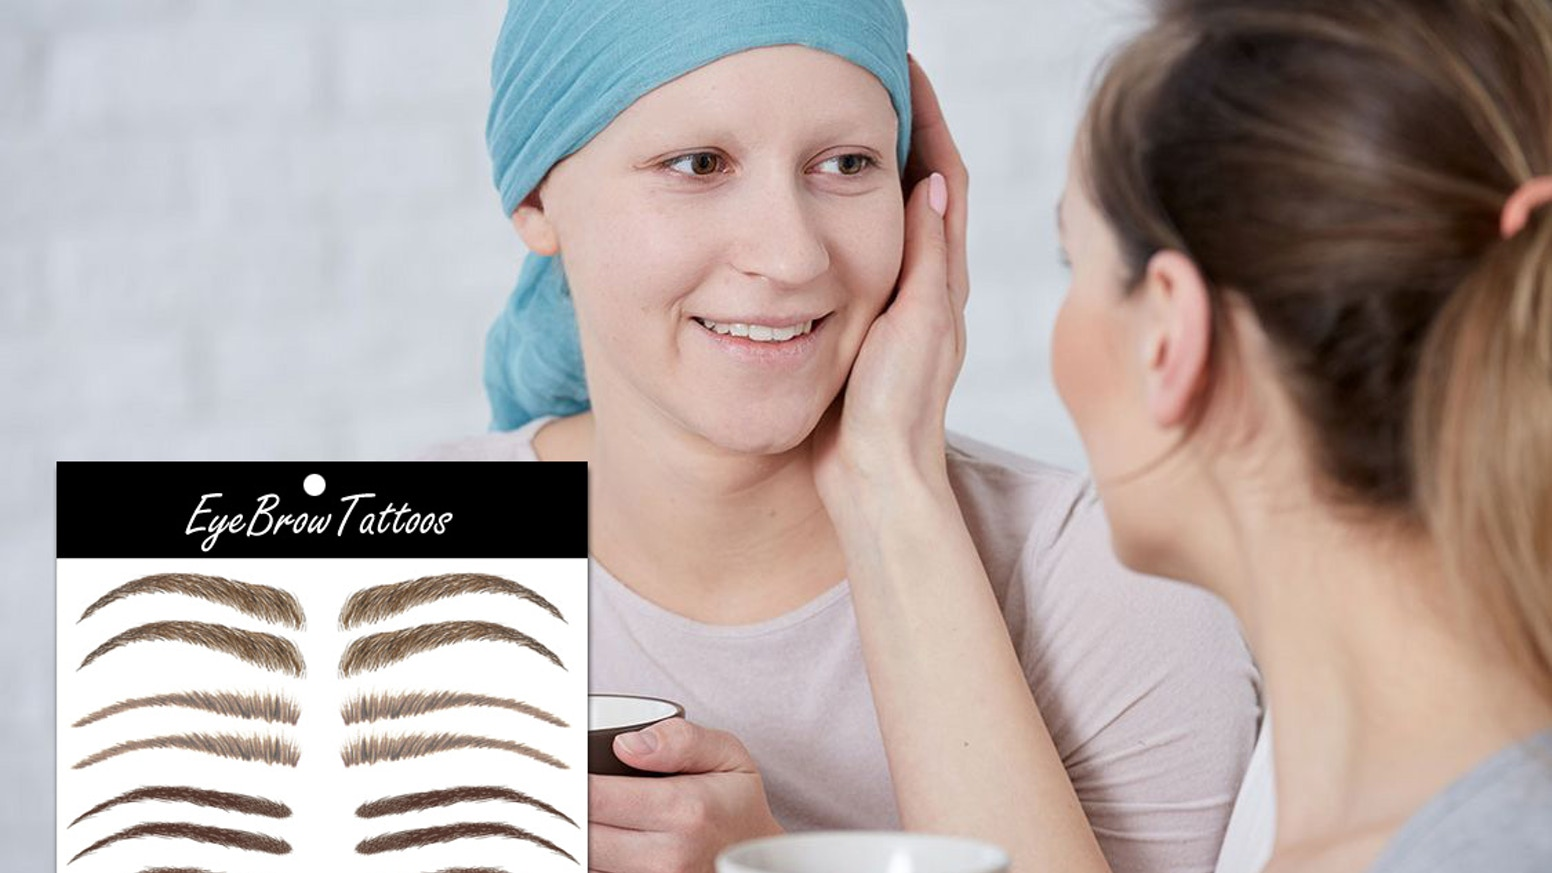 Eyebrow Temporary Tattoos For Cancer Patients By Keith Hoffart Kickstarter